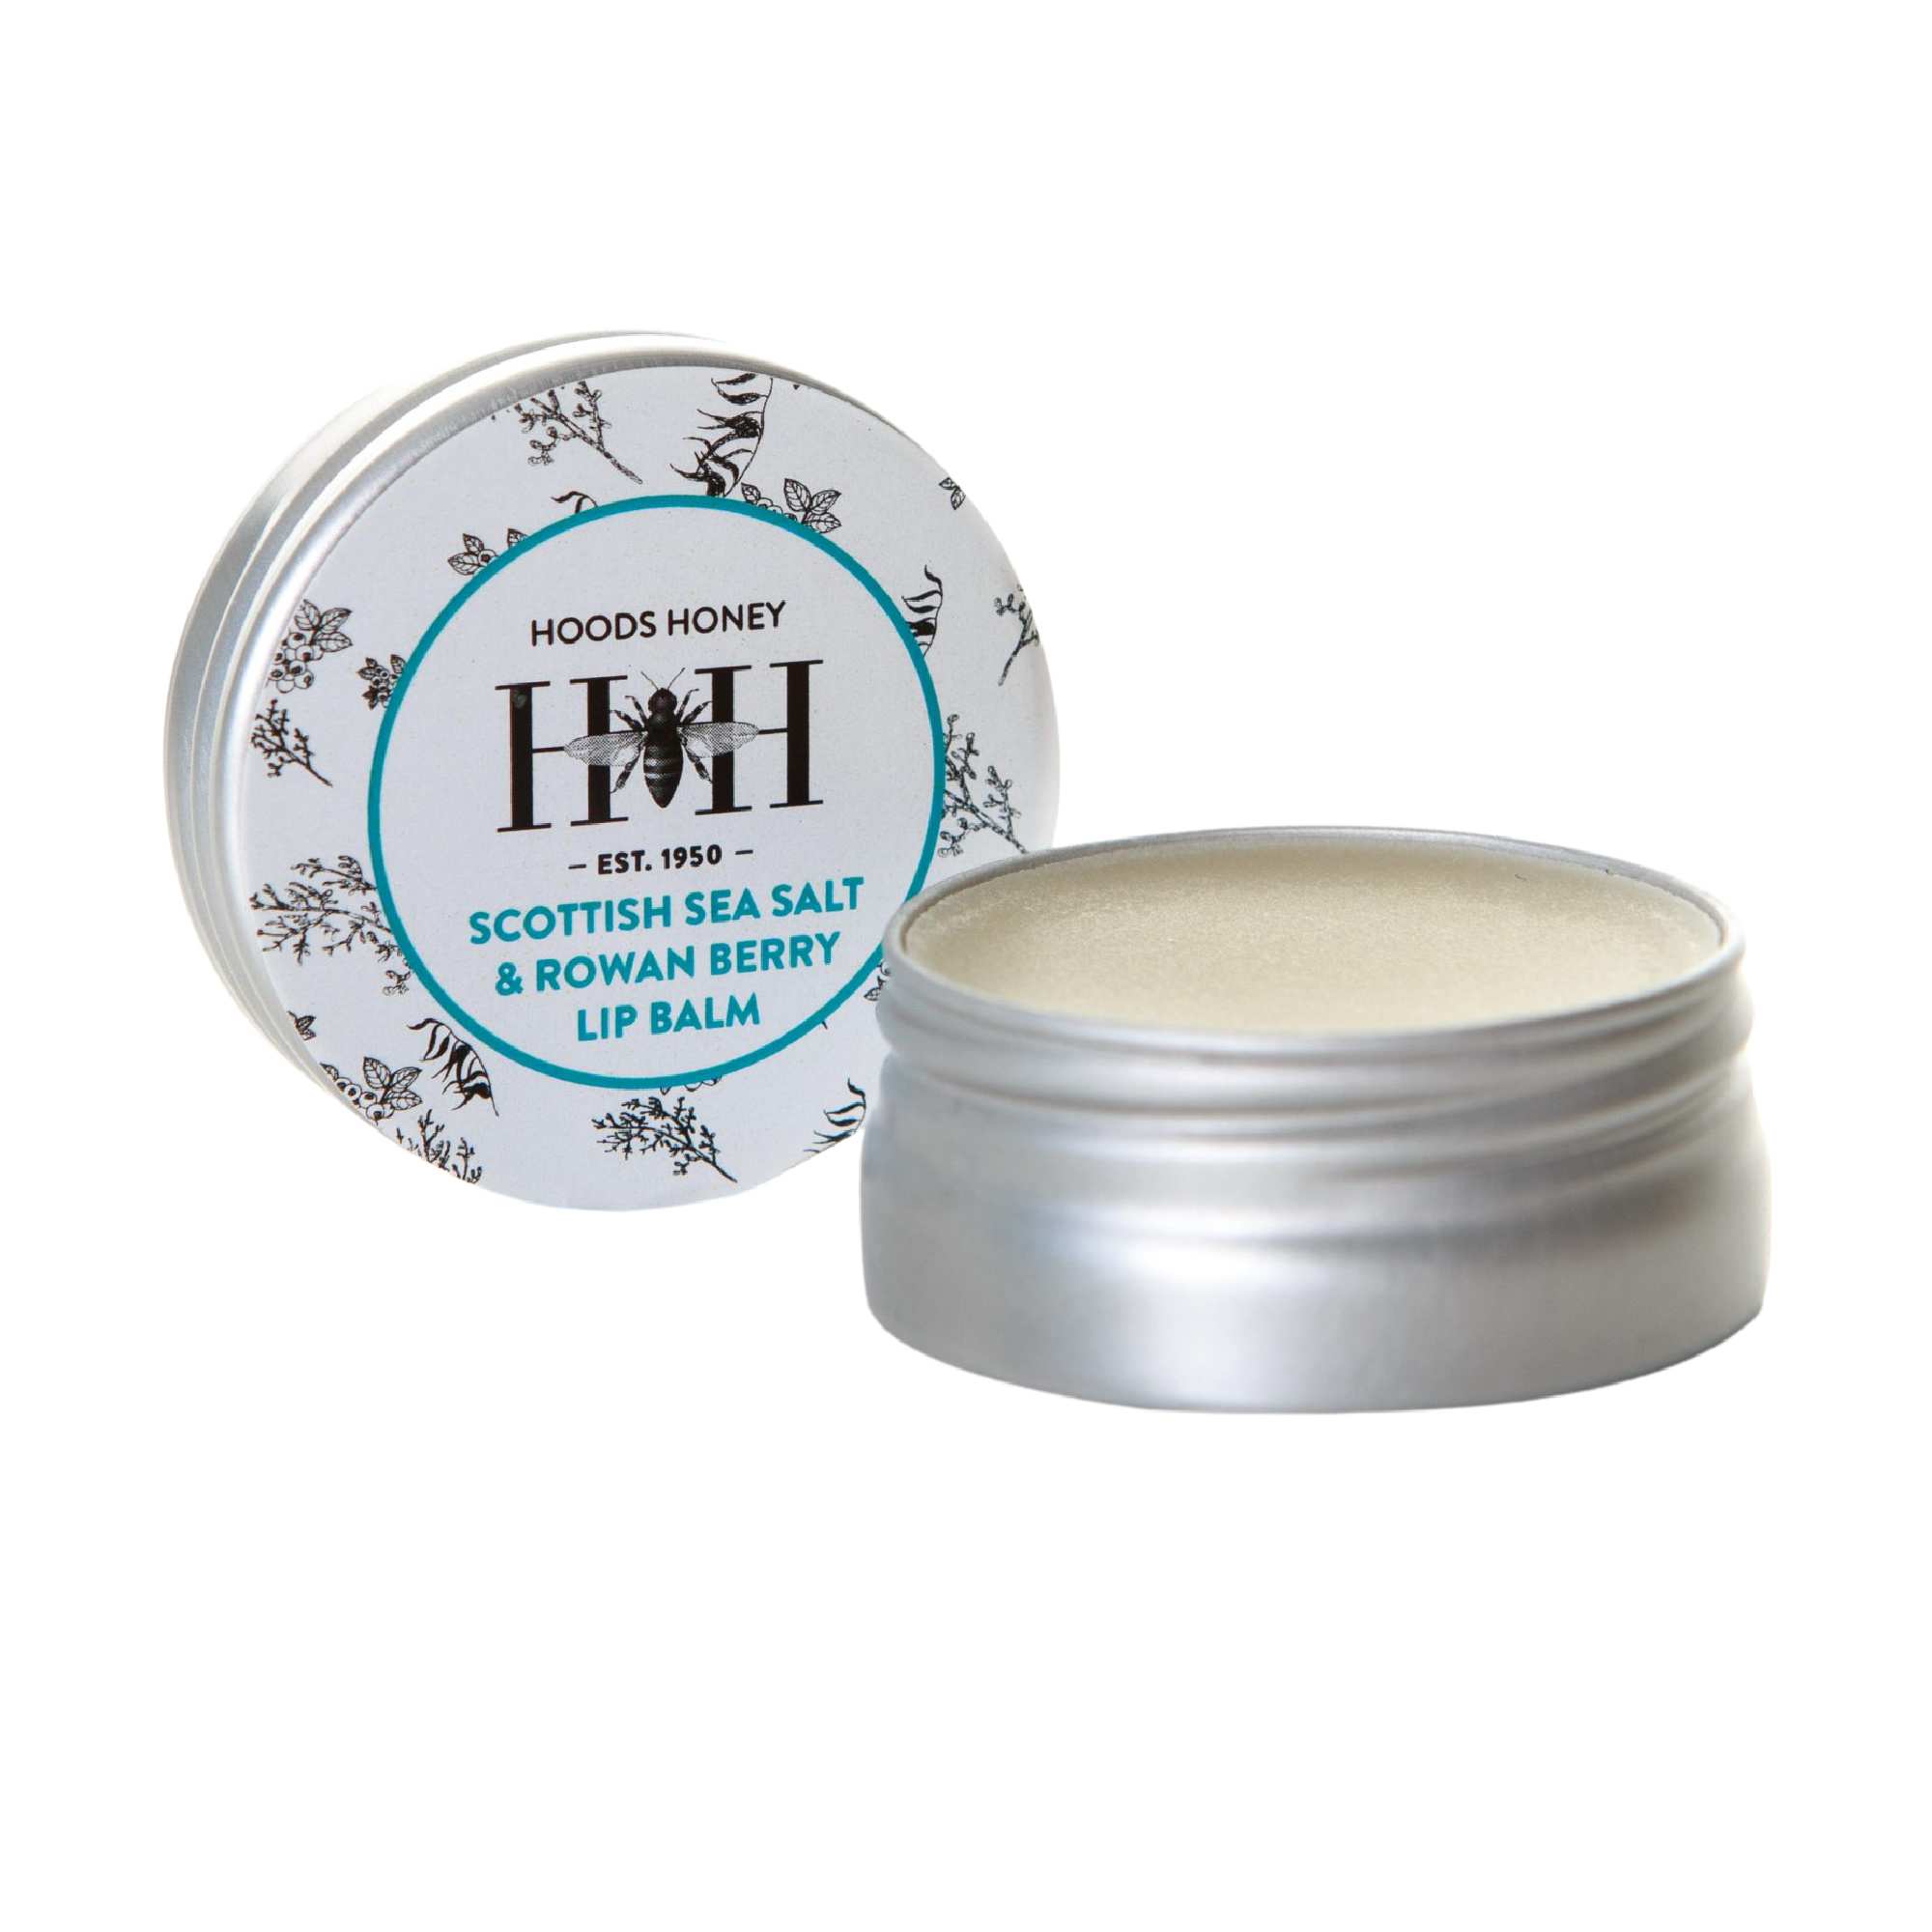 Lip balm by Hoods Honey